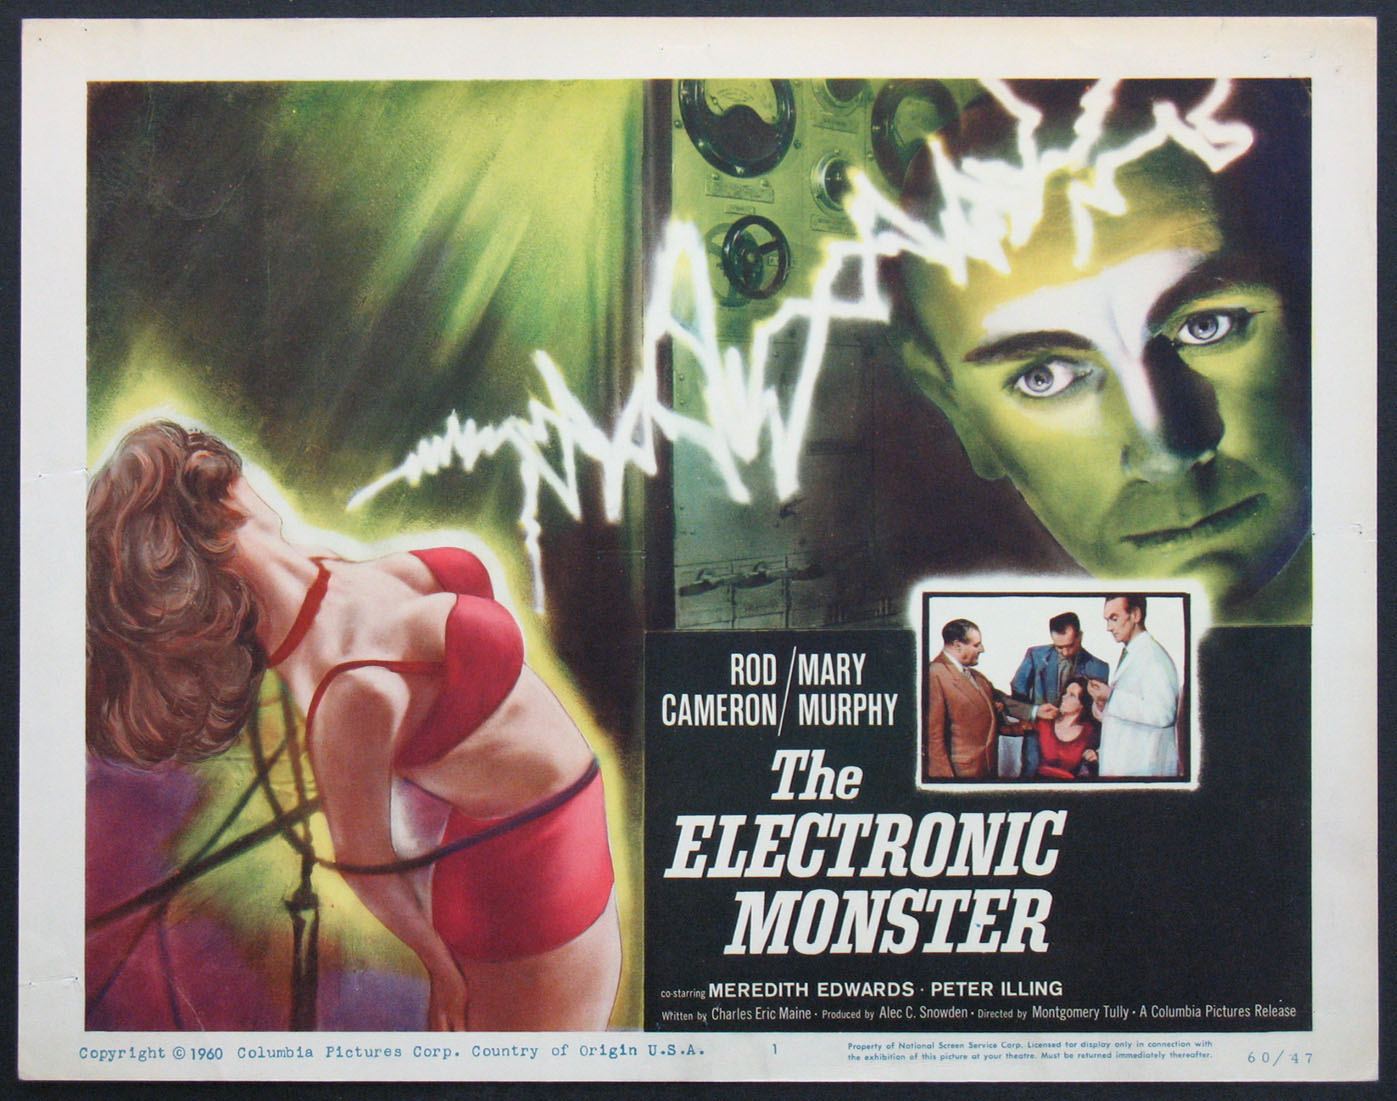 ELECTRONIC MONSTER, THE @ FilmPosters.com